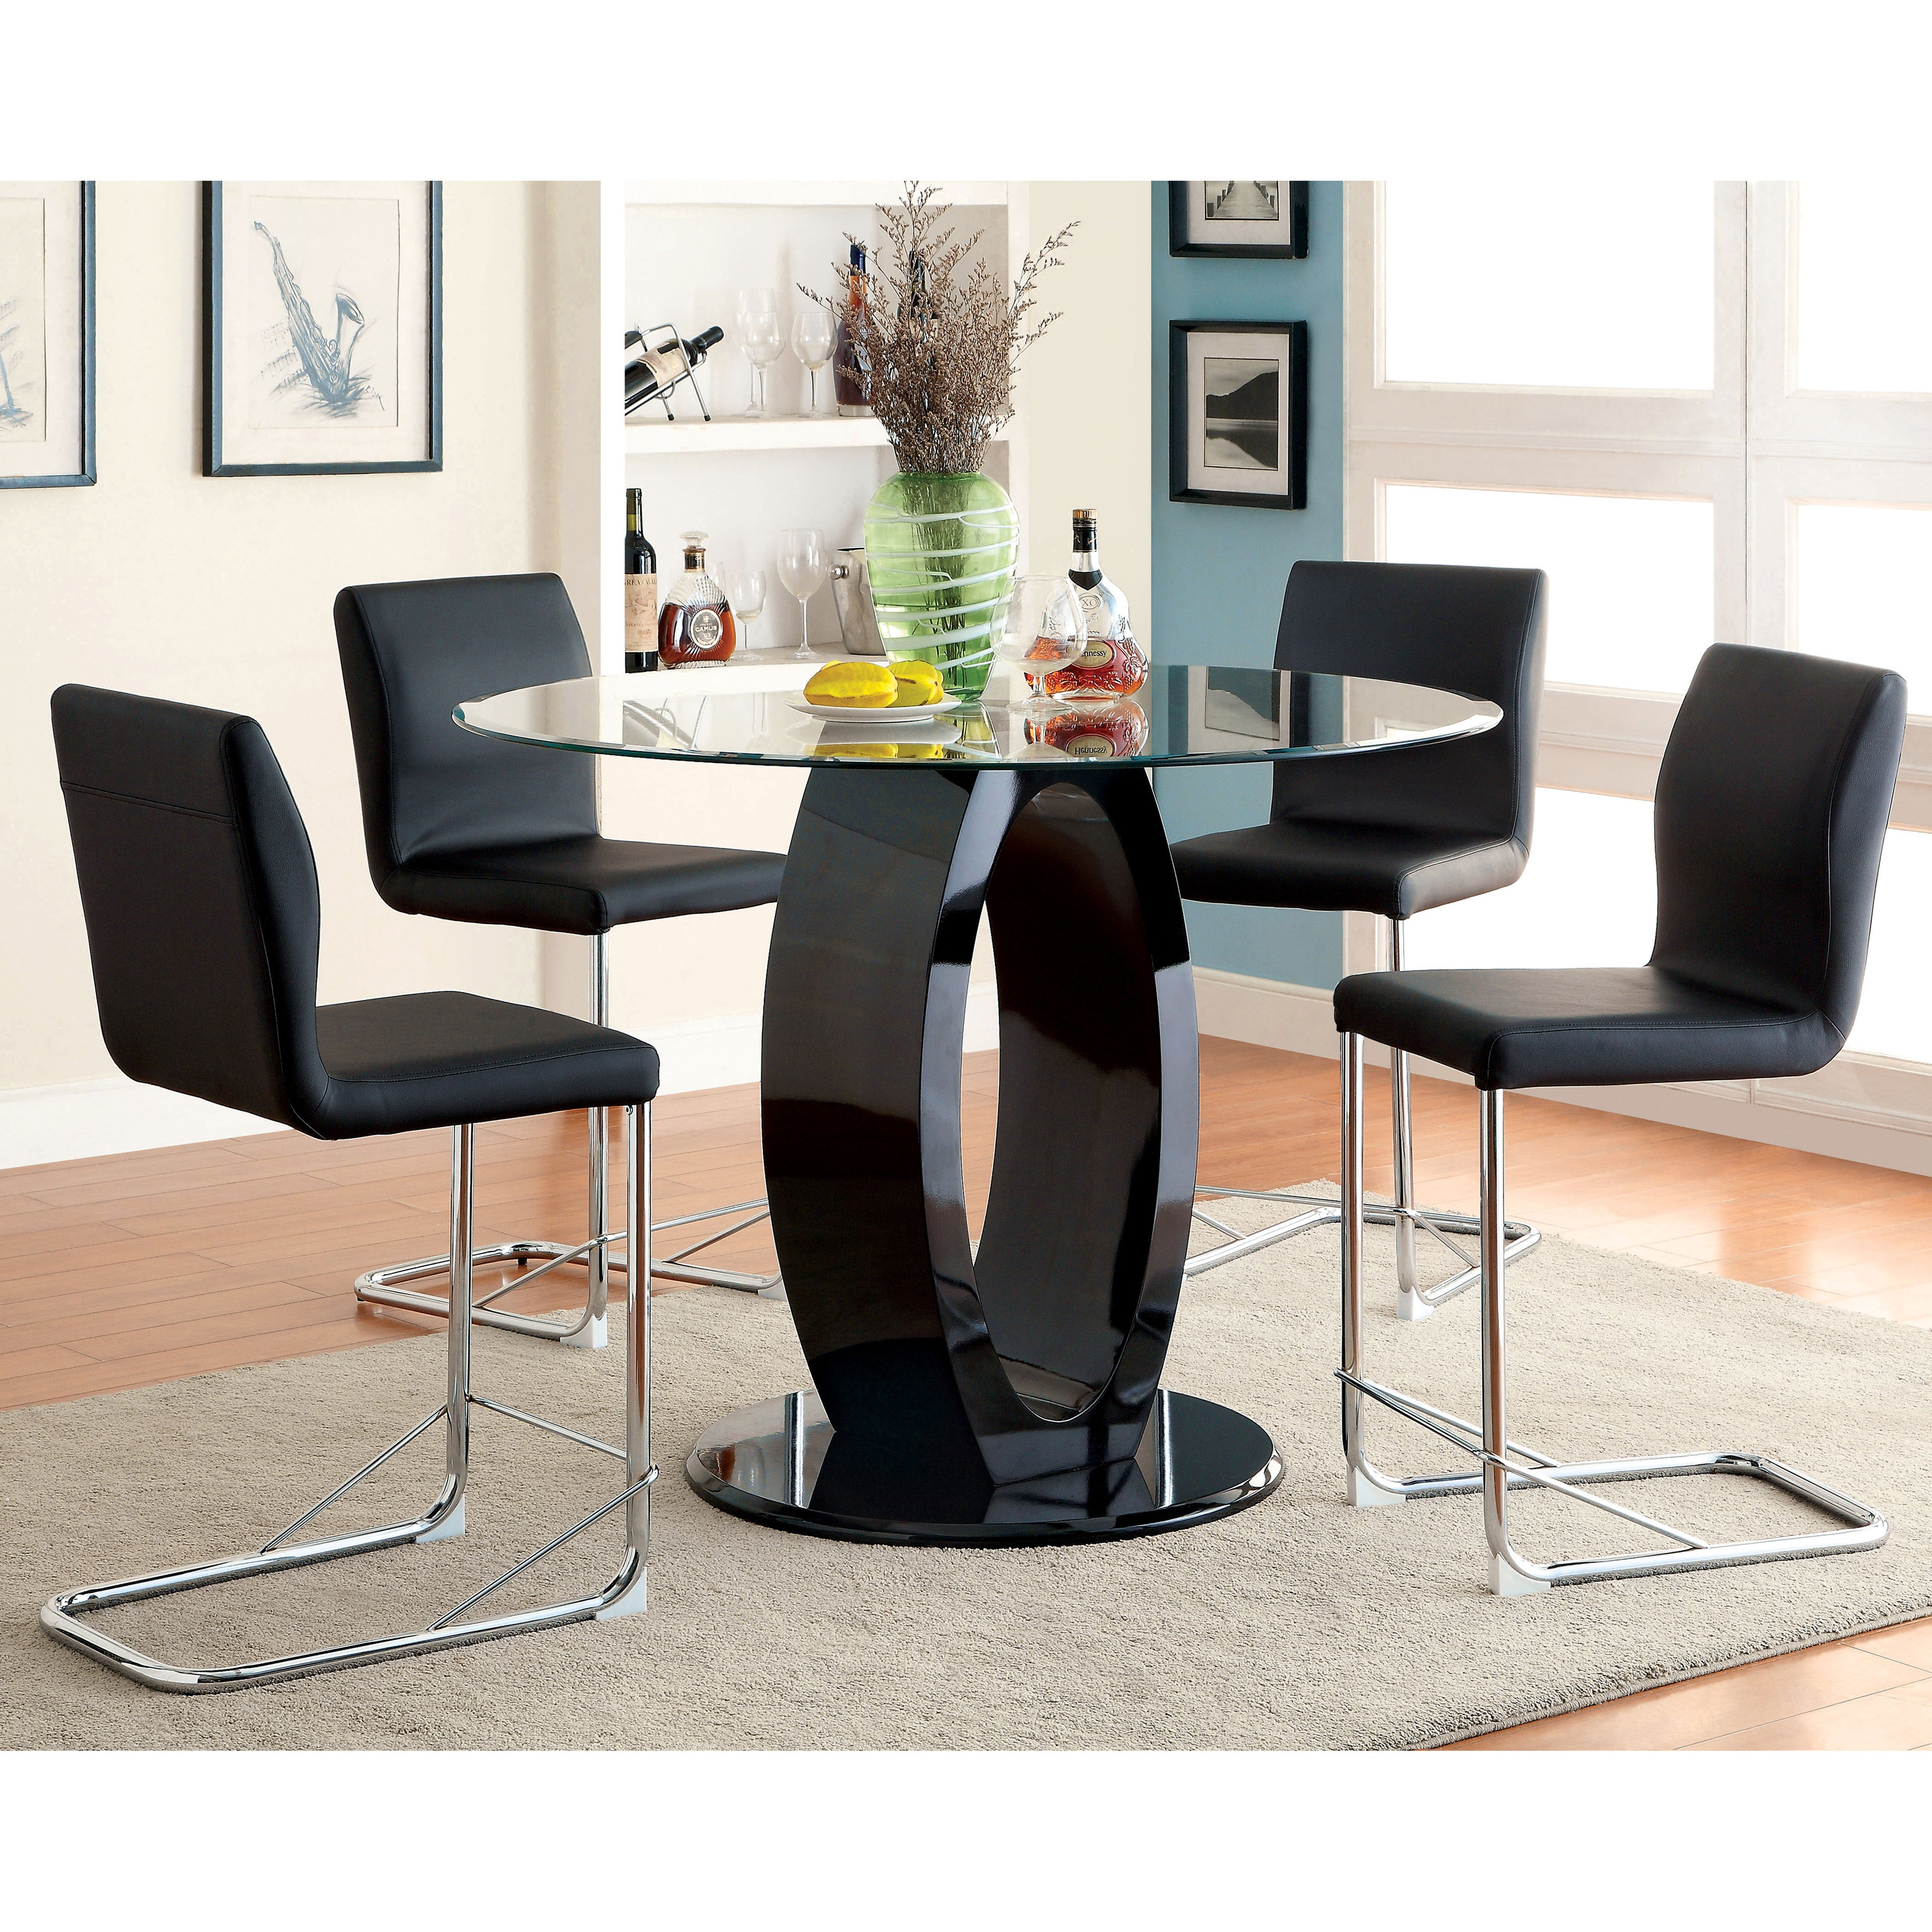 Furniture of America Olgette Contemporary High Gloss Roun...